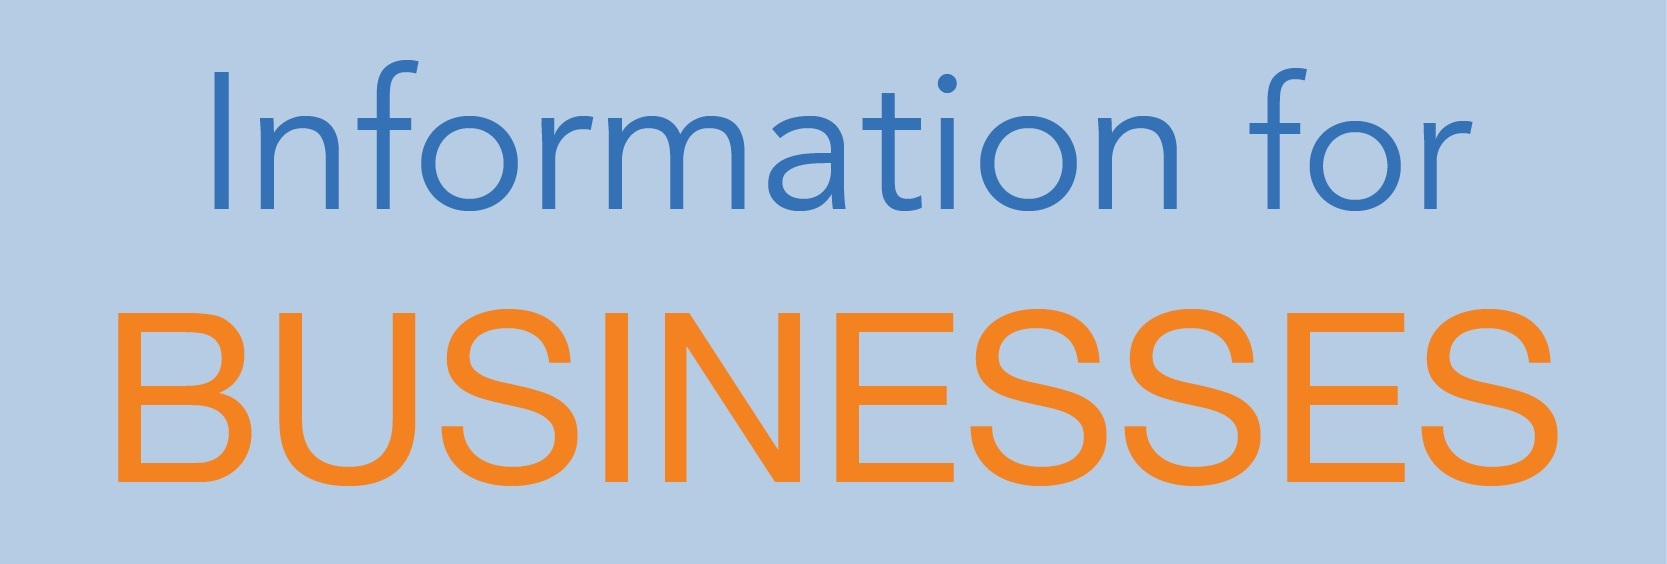 INFORMATION FOR BUSINESSES